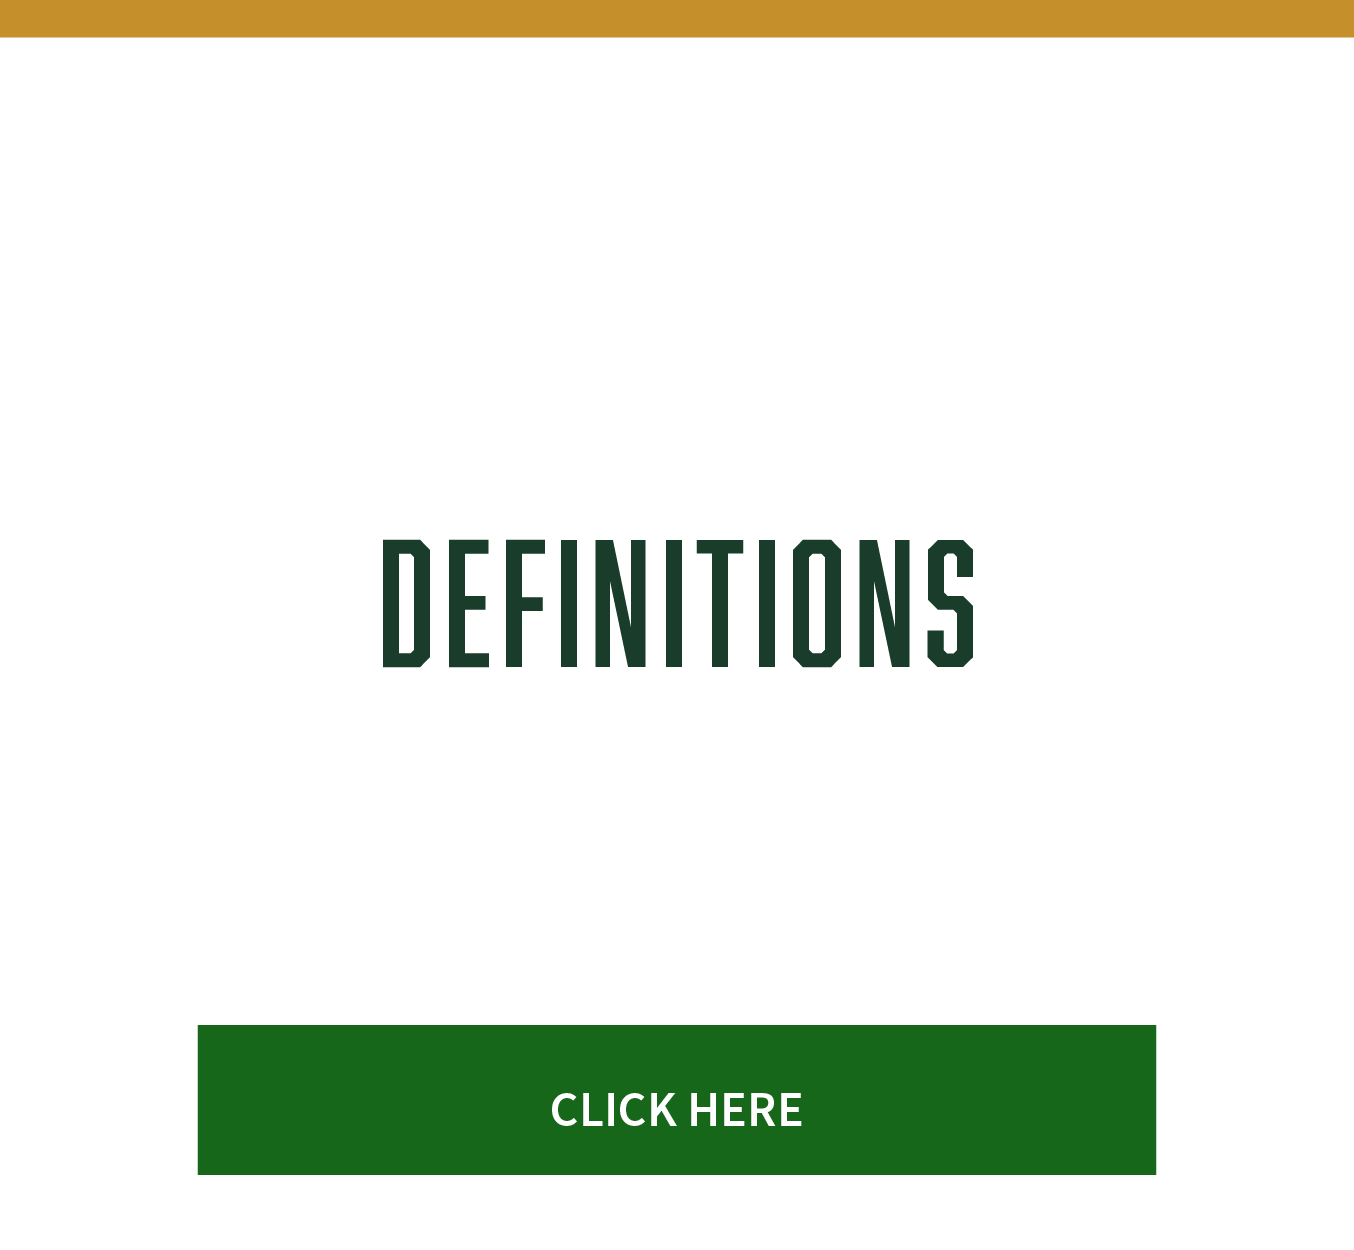 Definitions. Click here.